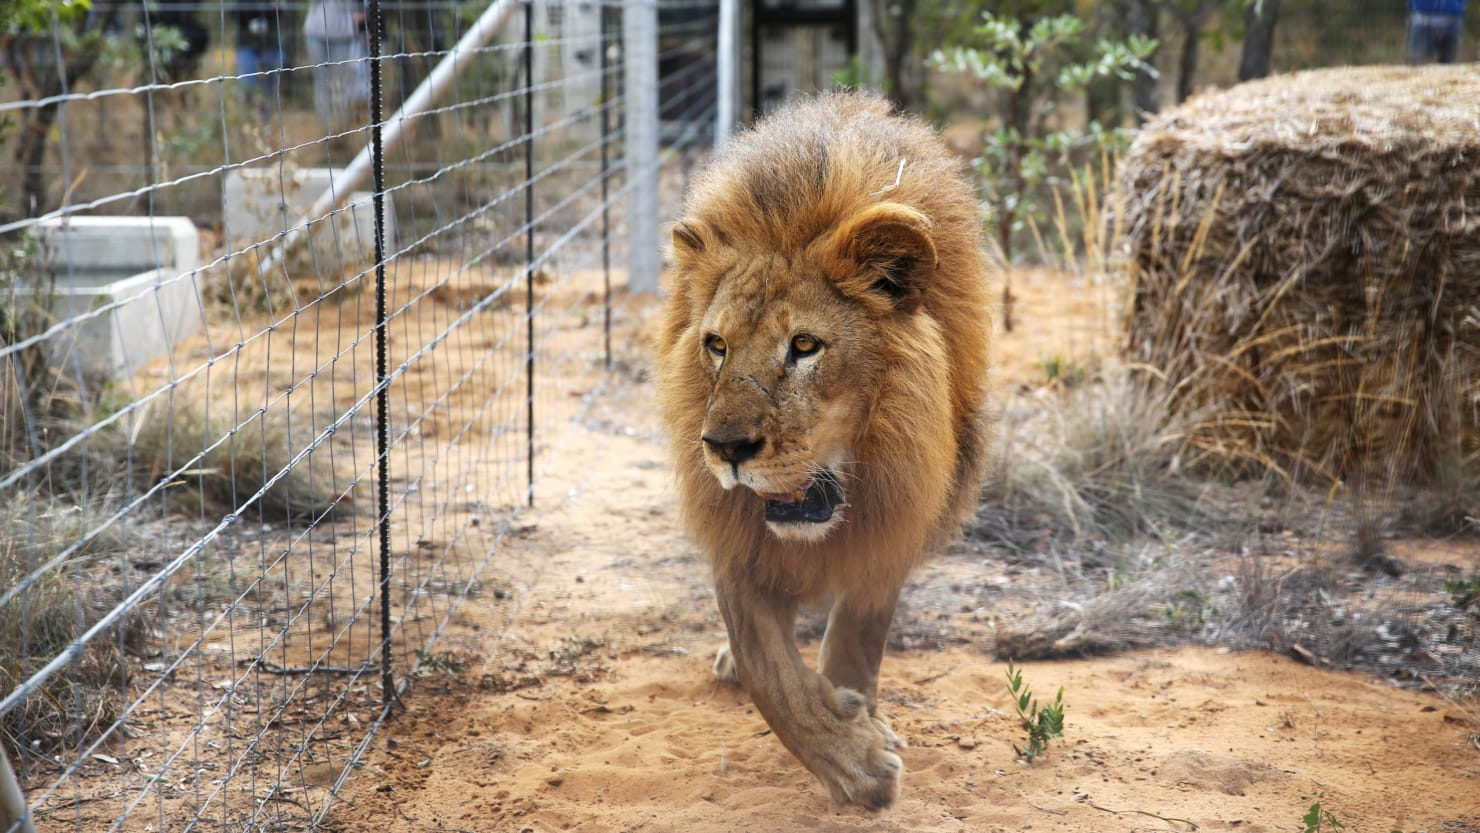 lion escapes enclosure kills 22 year old intern the daily beast